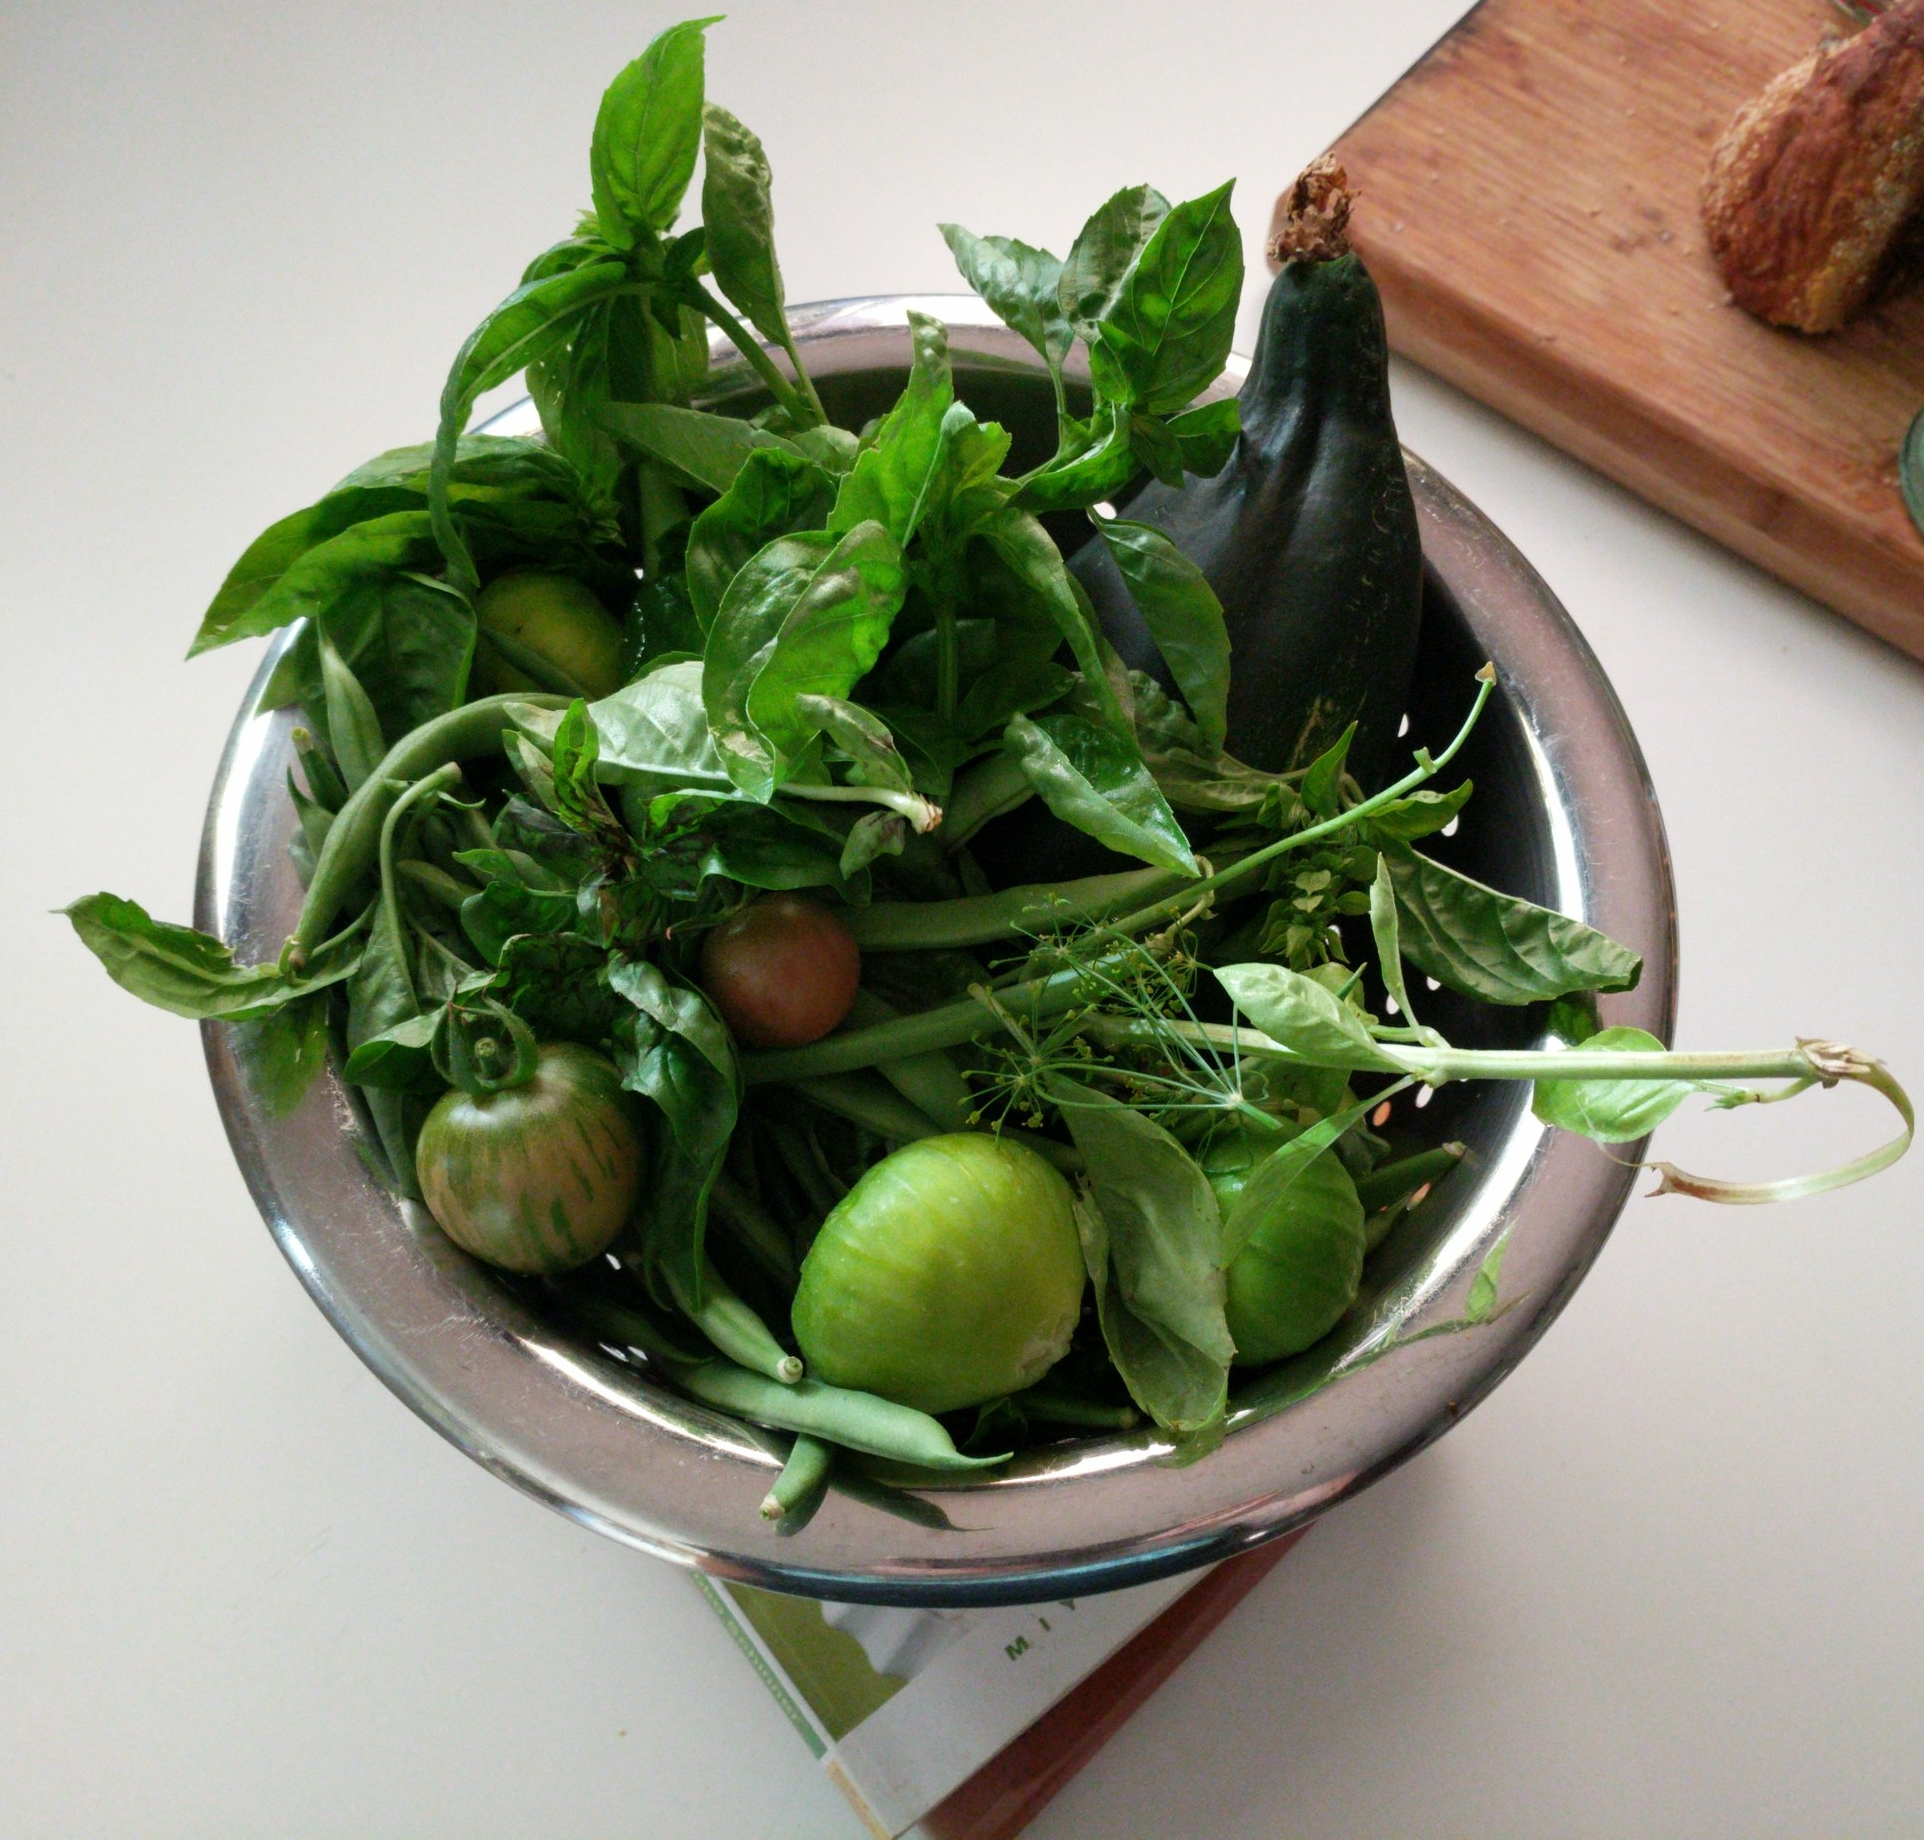 Mid-September garden haul. Two, if not three, varieties of basil stuck in there (Italian, Sweet Thai, Holy Basil)